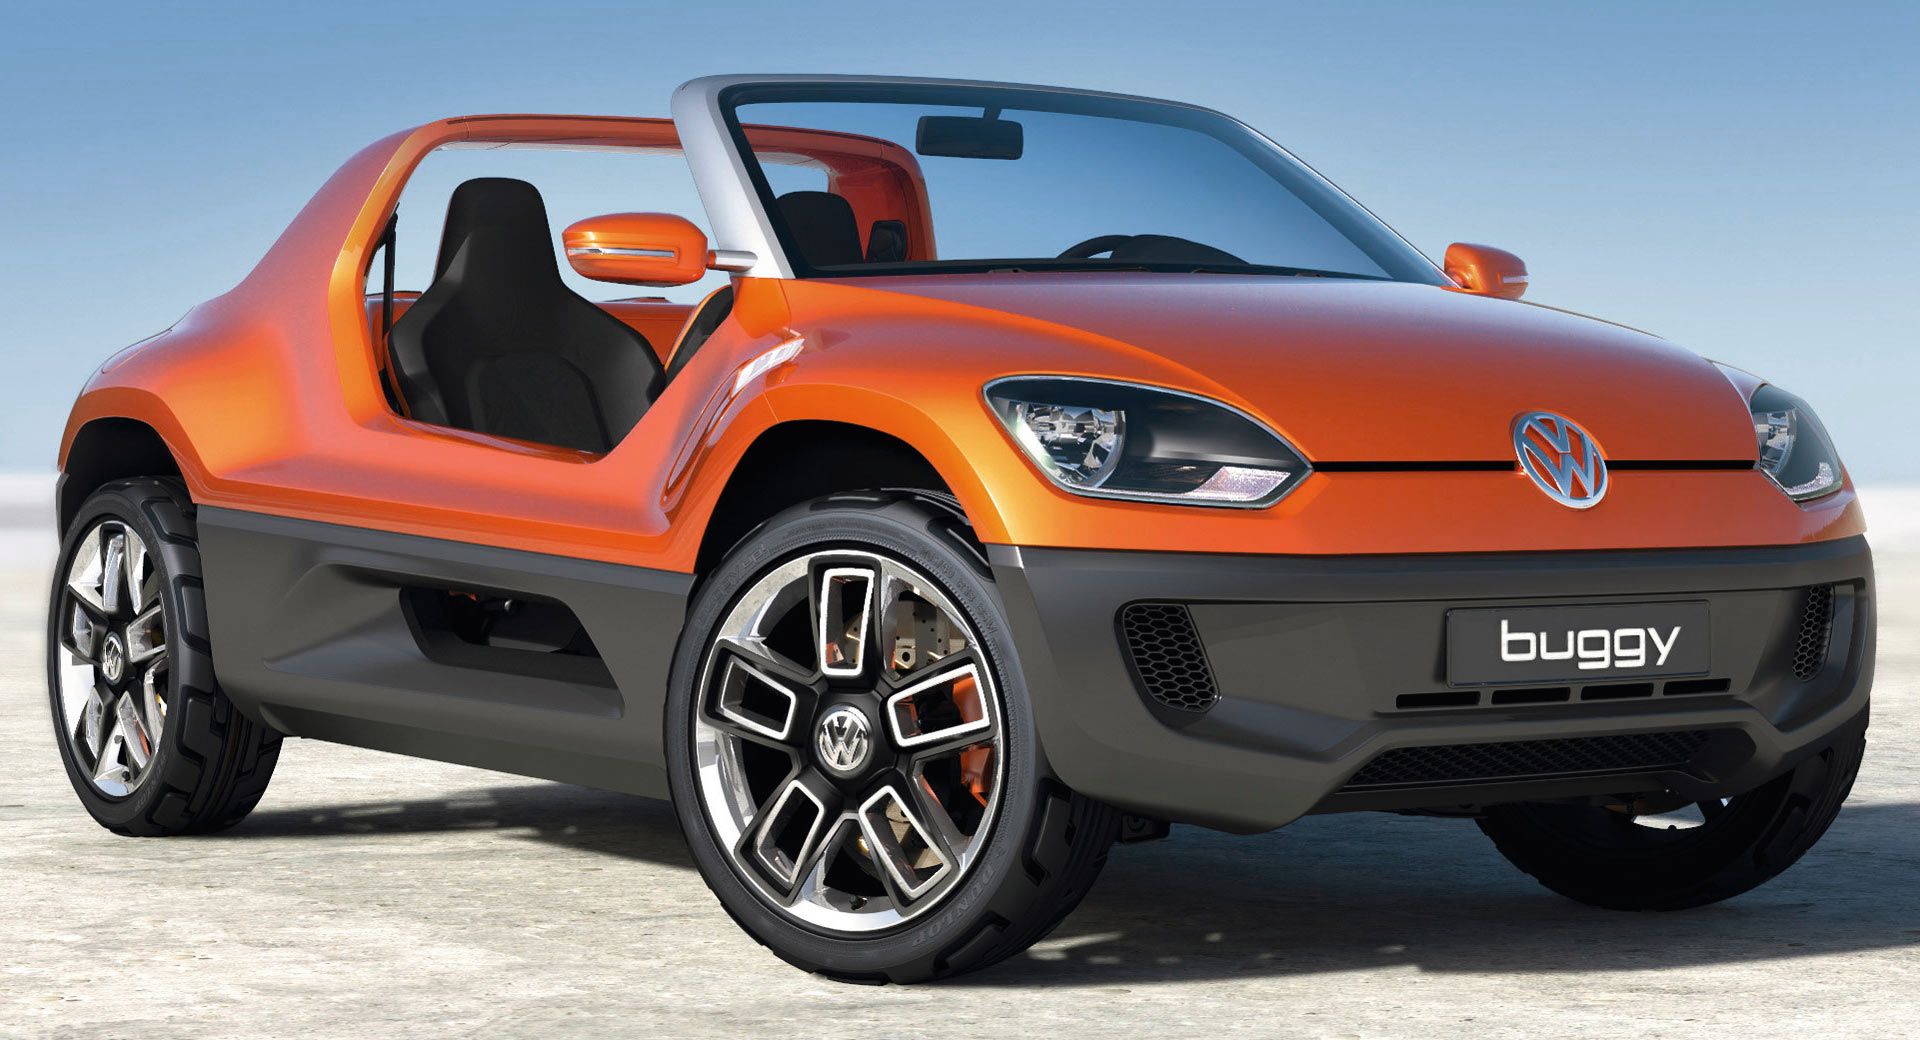 Electric Vw Beach Buggy Could Debut In Geneva Might Reach